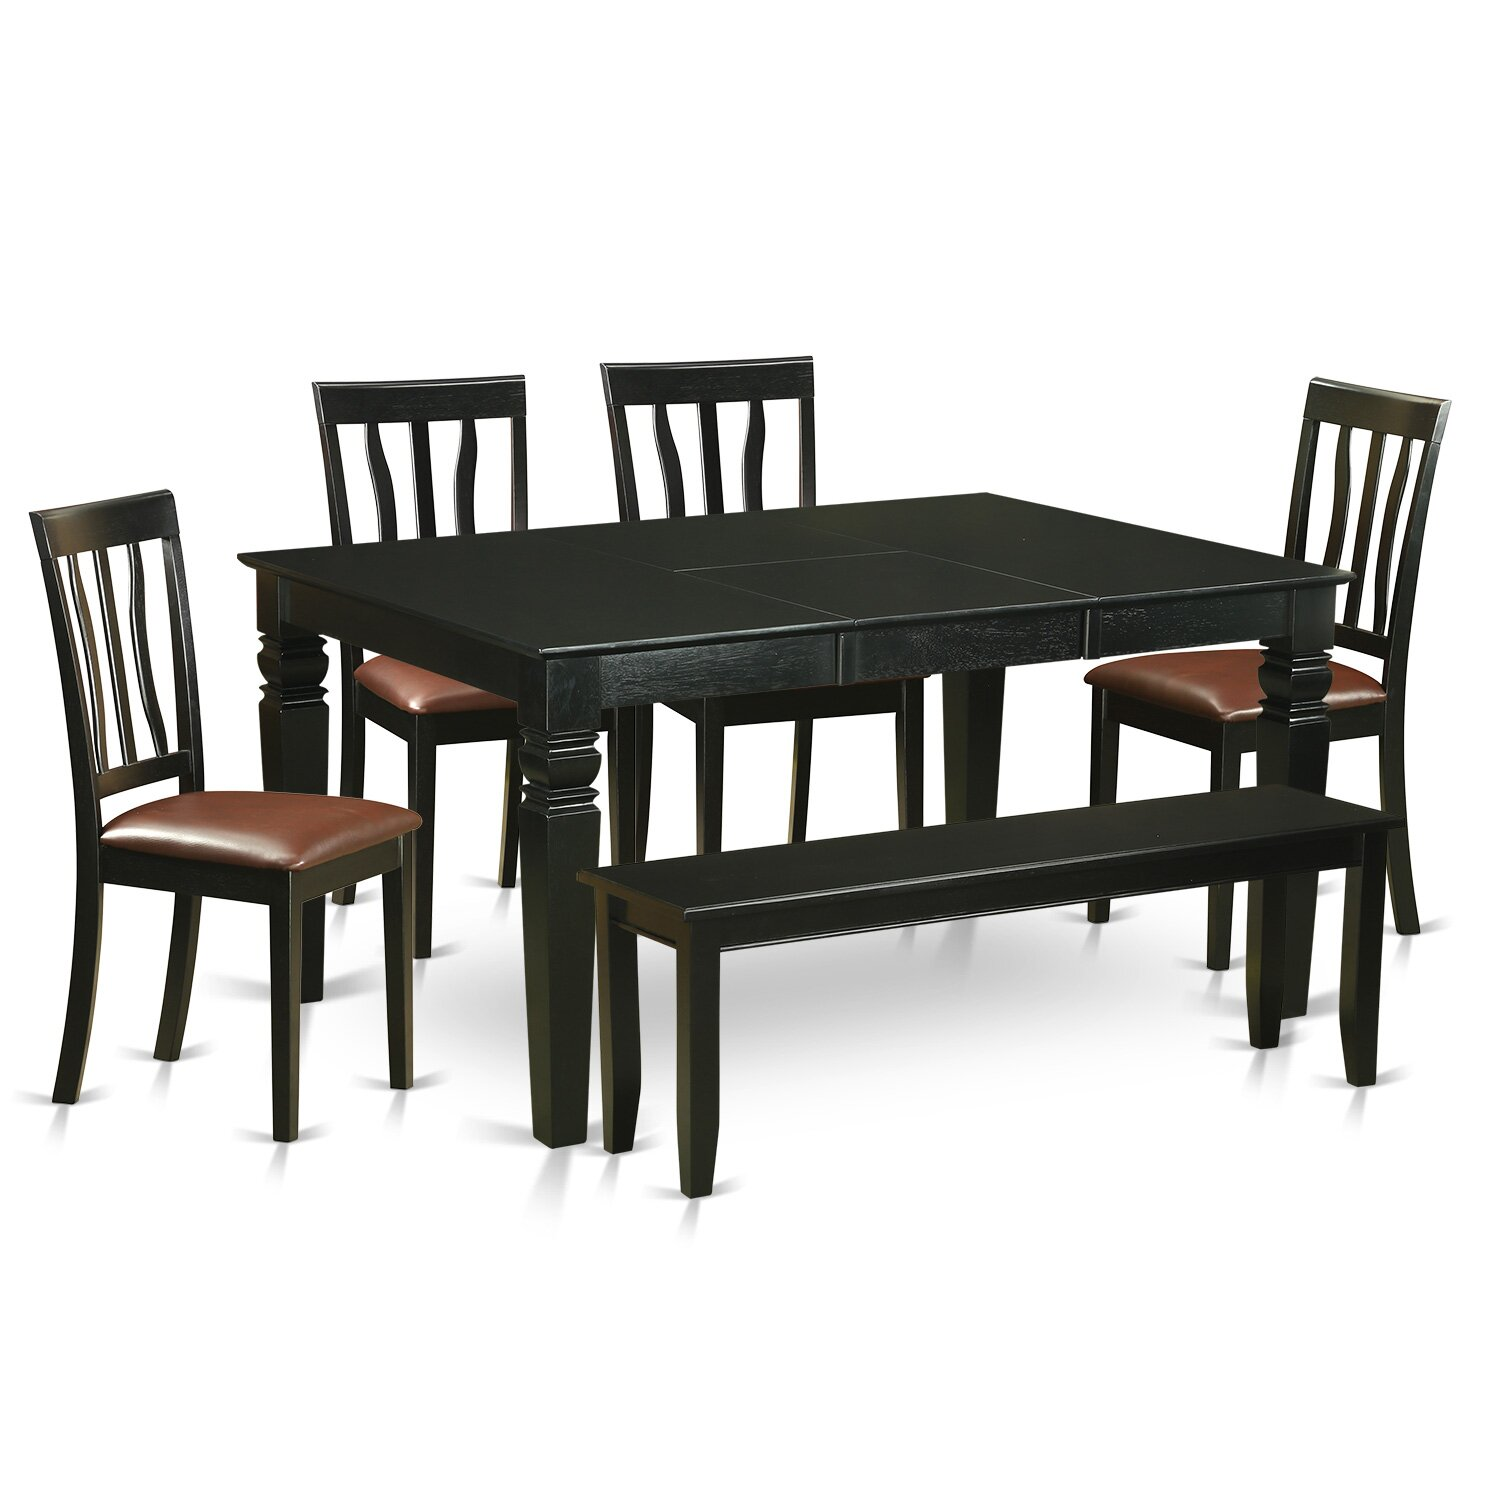 Wooden importers weston 6 piece dining set wayfair for Table 6 of gstr 1